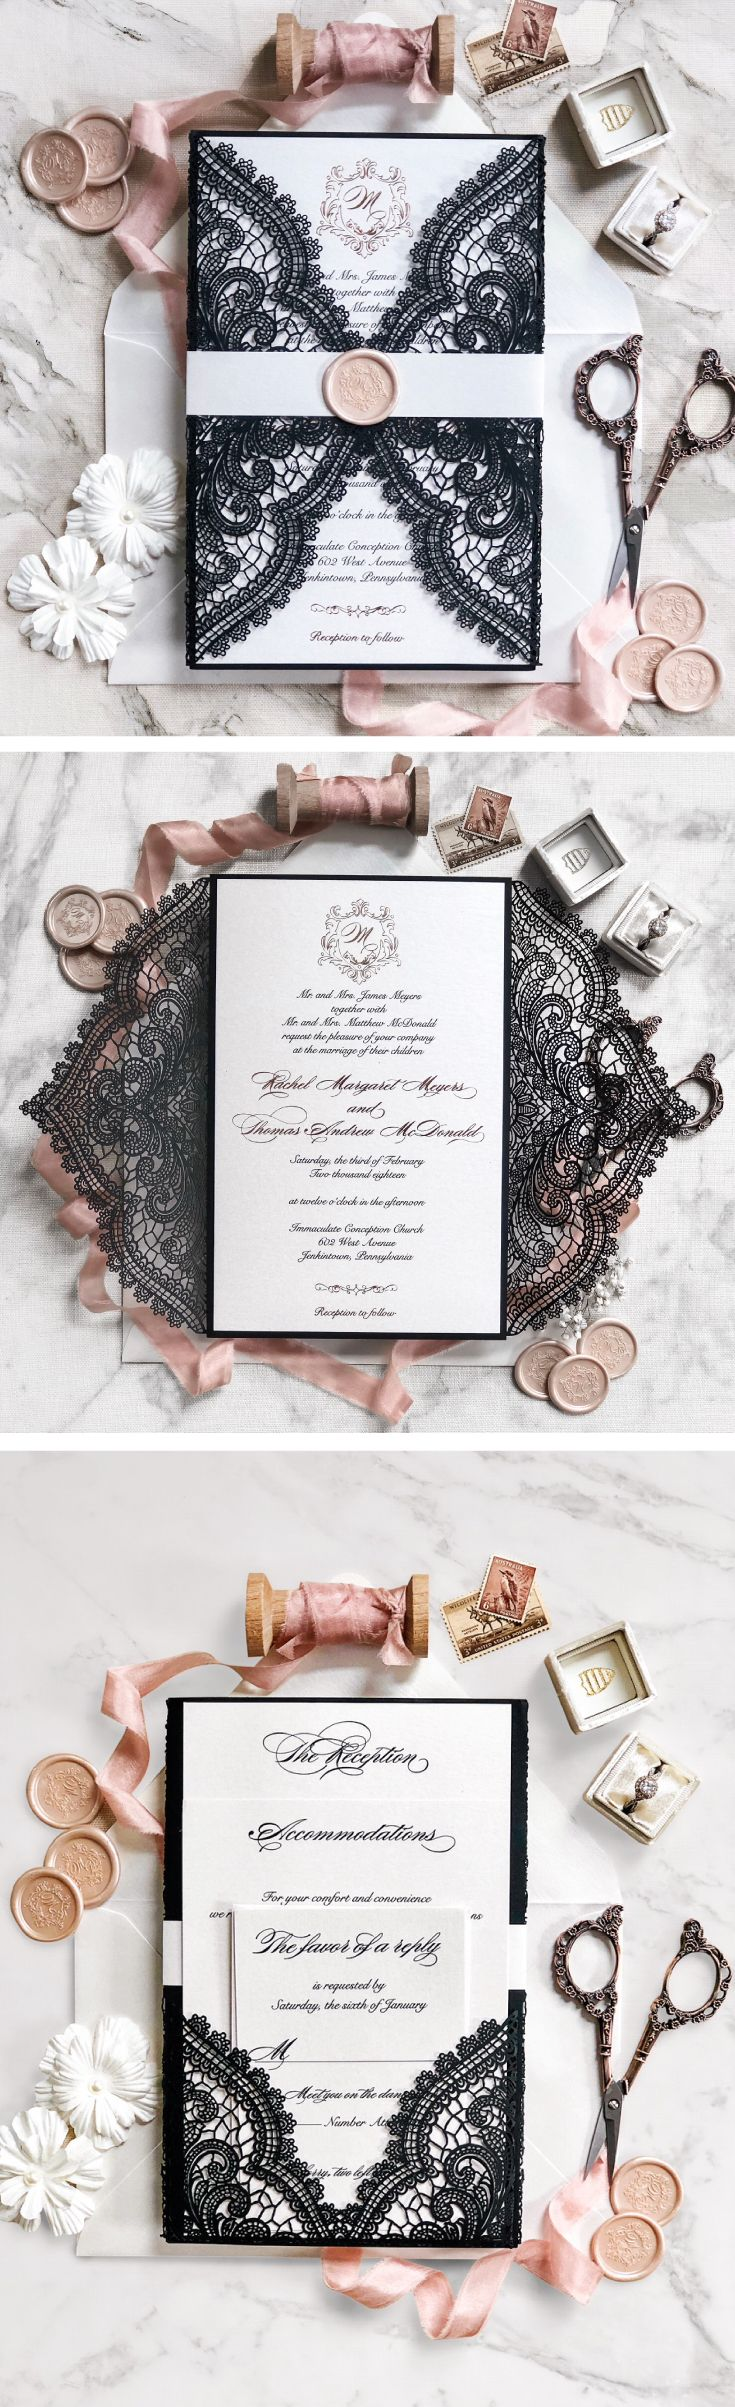 Best 25 natural wedding stationery ideas on pinterest rustic an elegant laser cut chantilly lace gatefold wedding invitation with rose gold foiling and black monicamarmolfo Choice Image